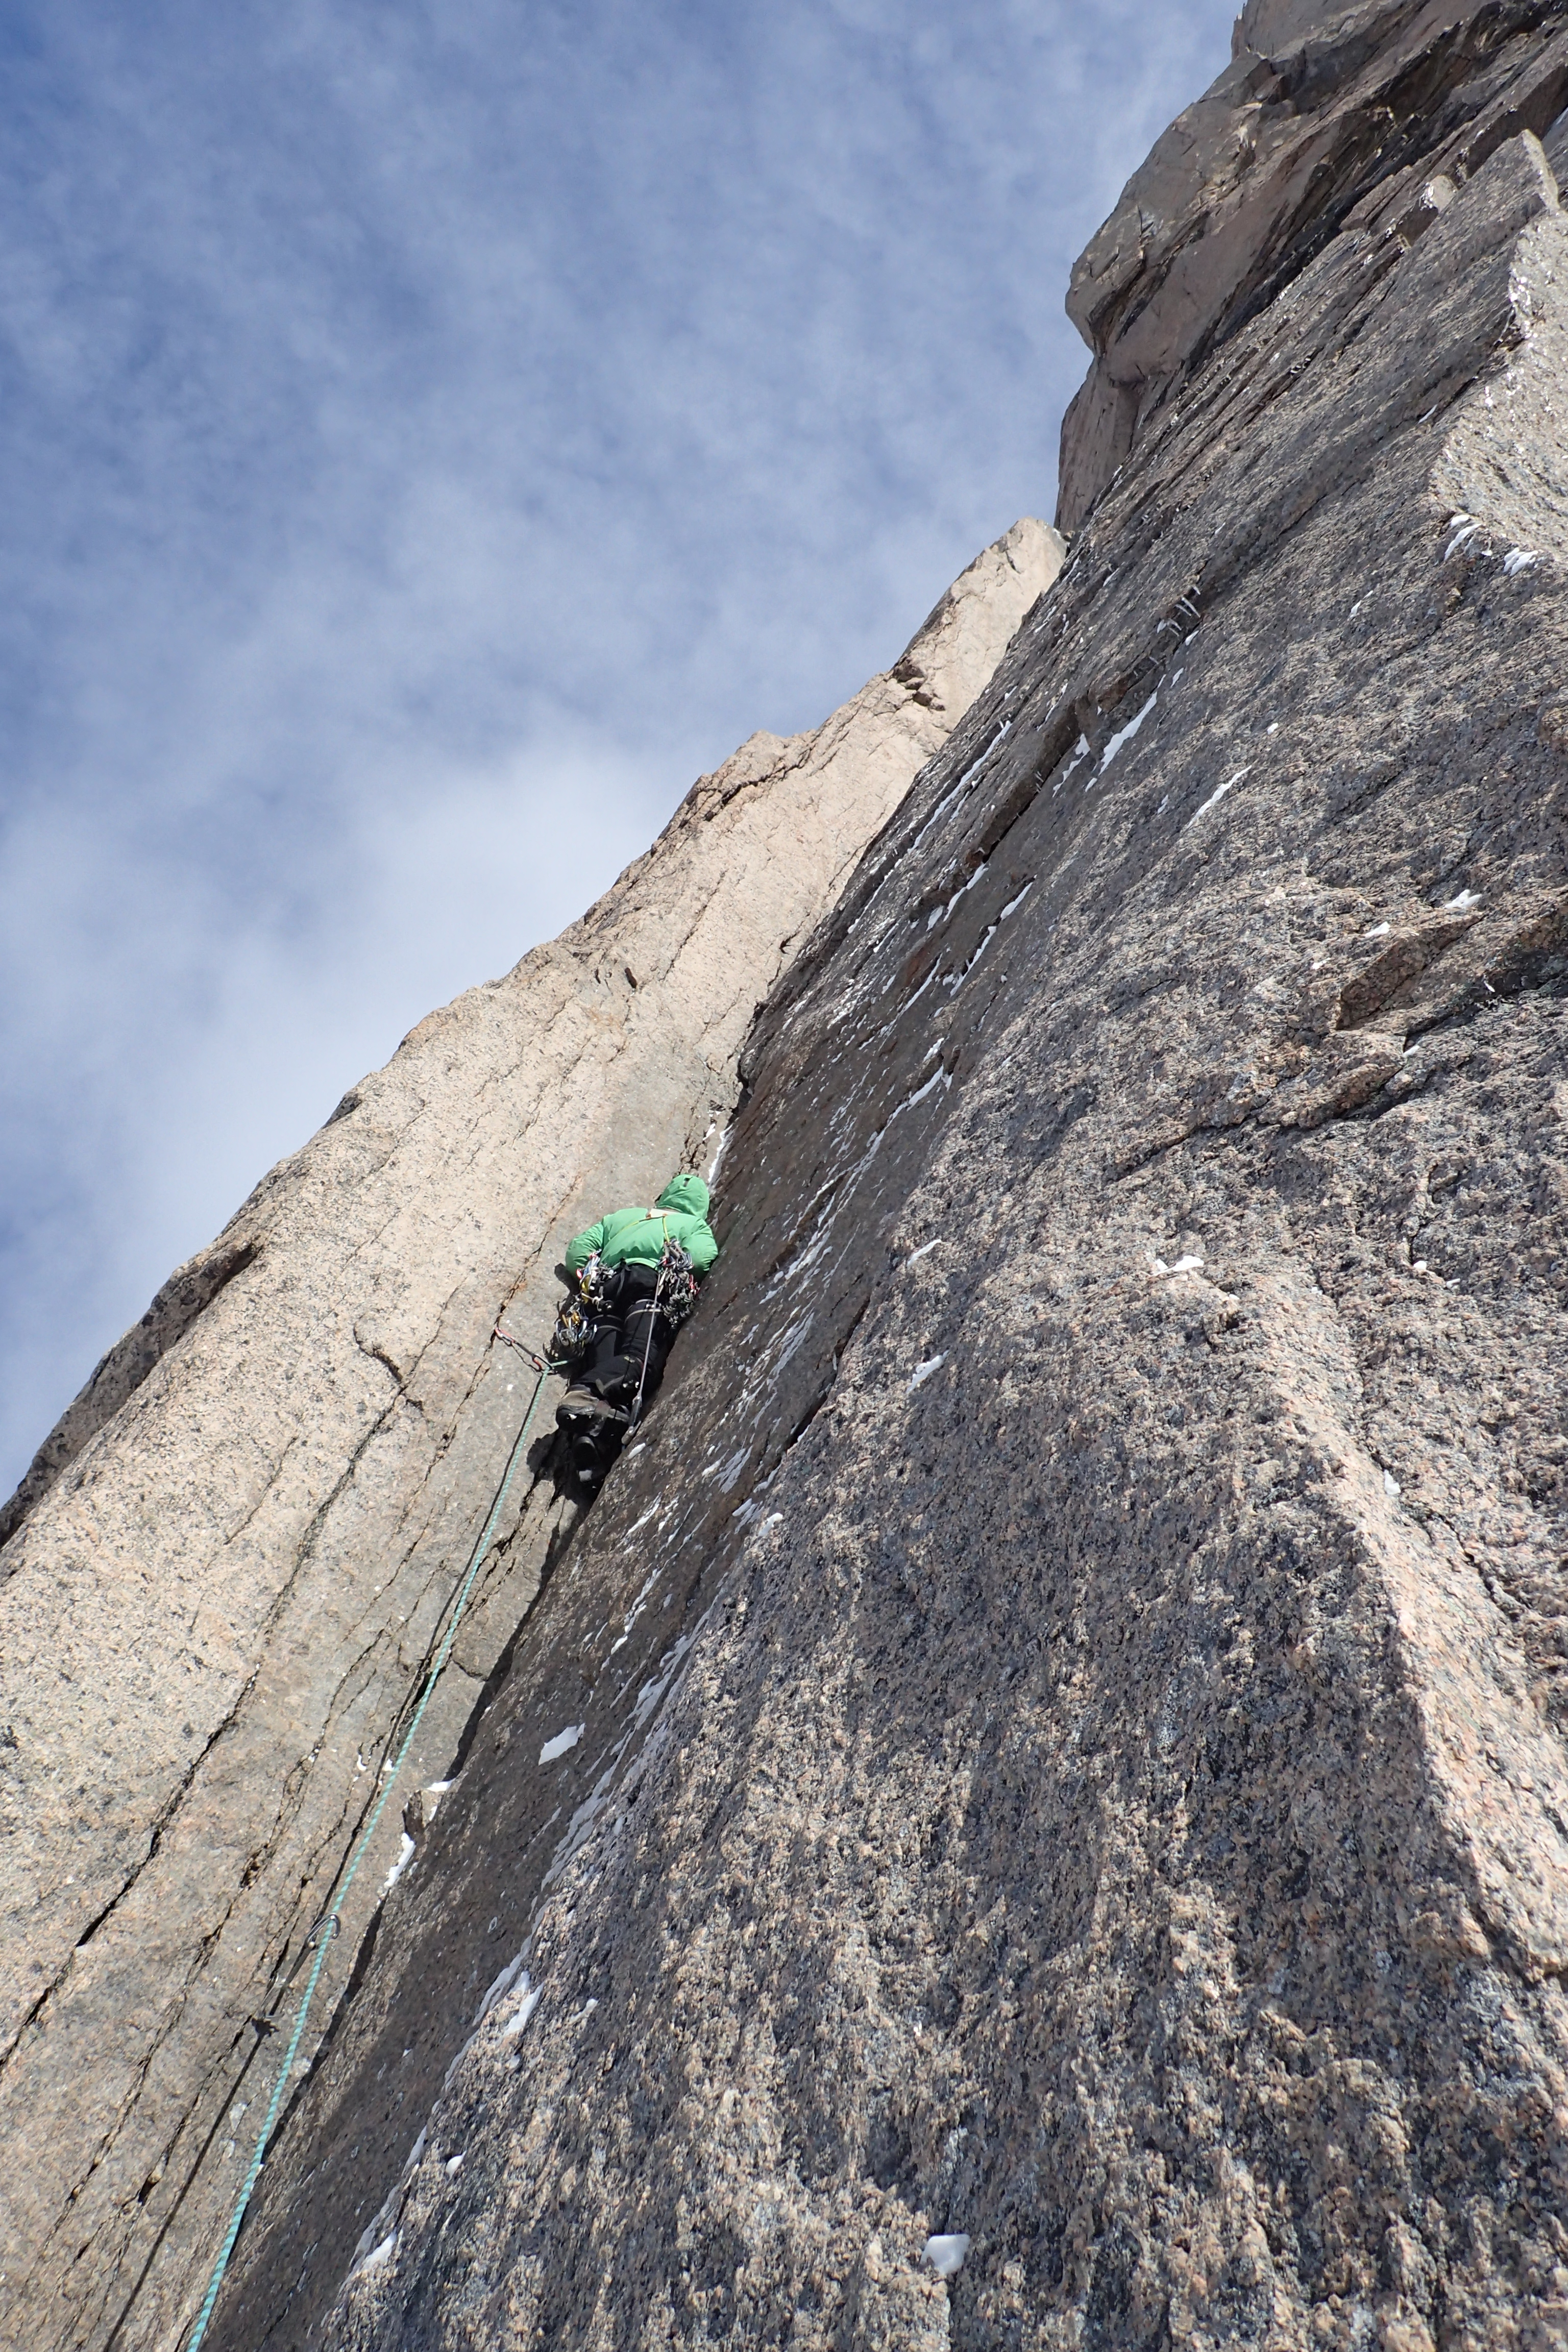 Sergey Nilov climbing on Ratatoskr, a new route on the northwest face of Mt. Asgard's south tower.